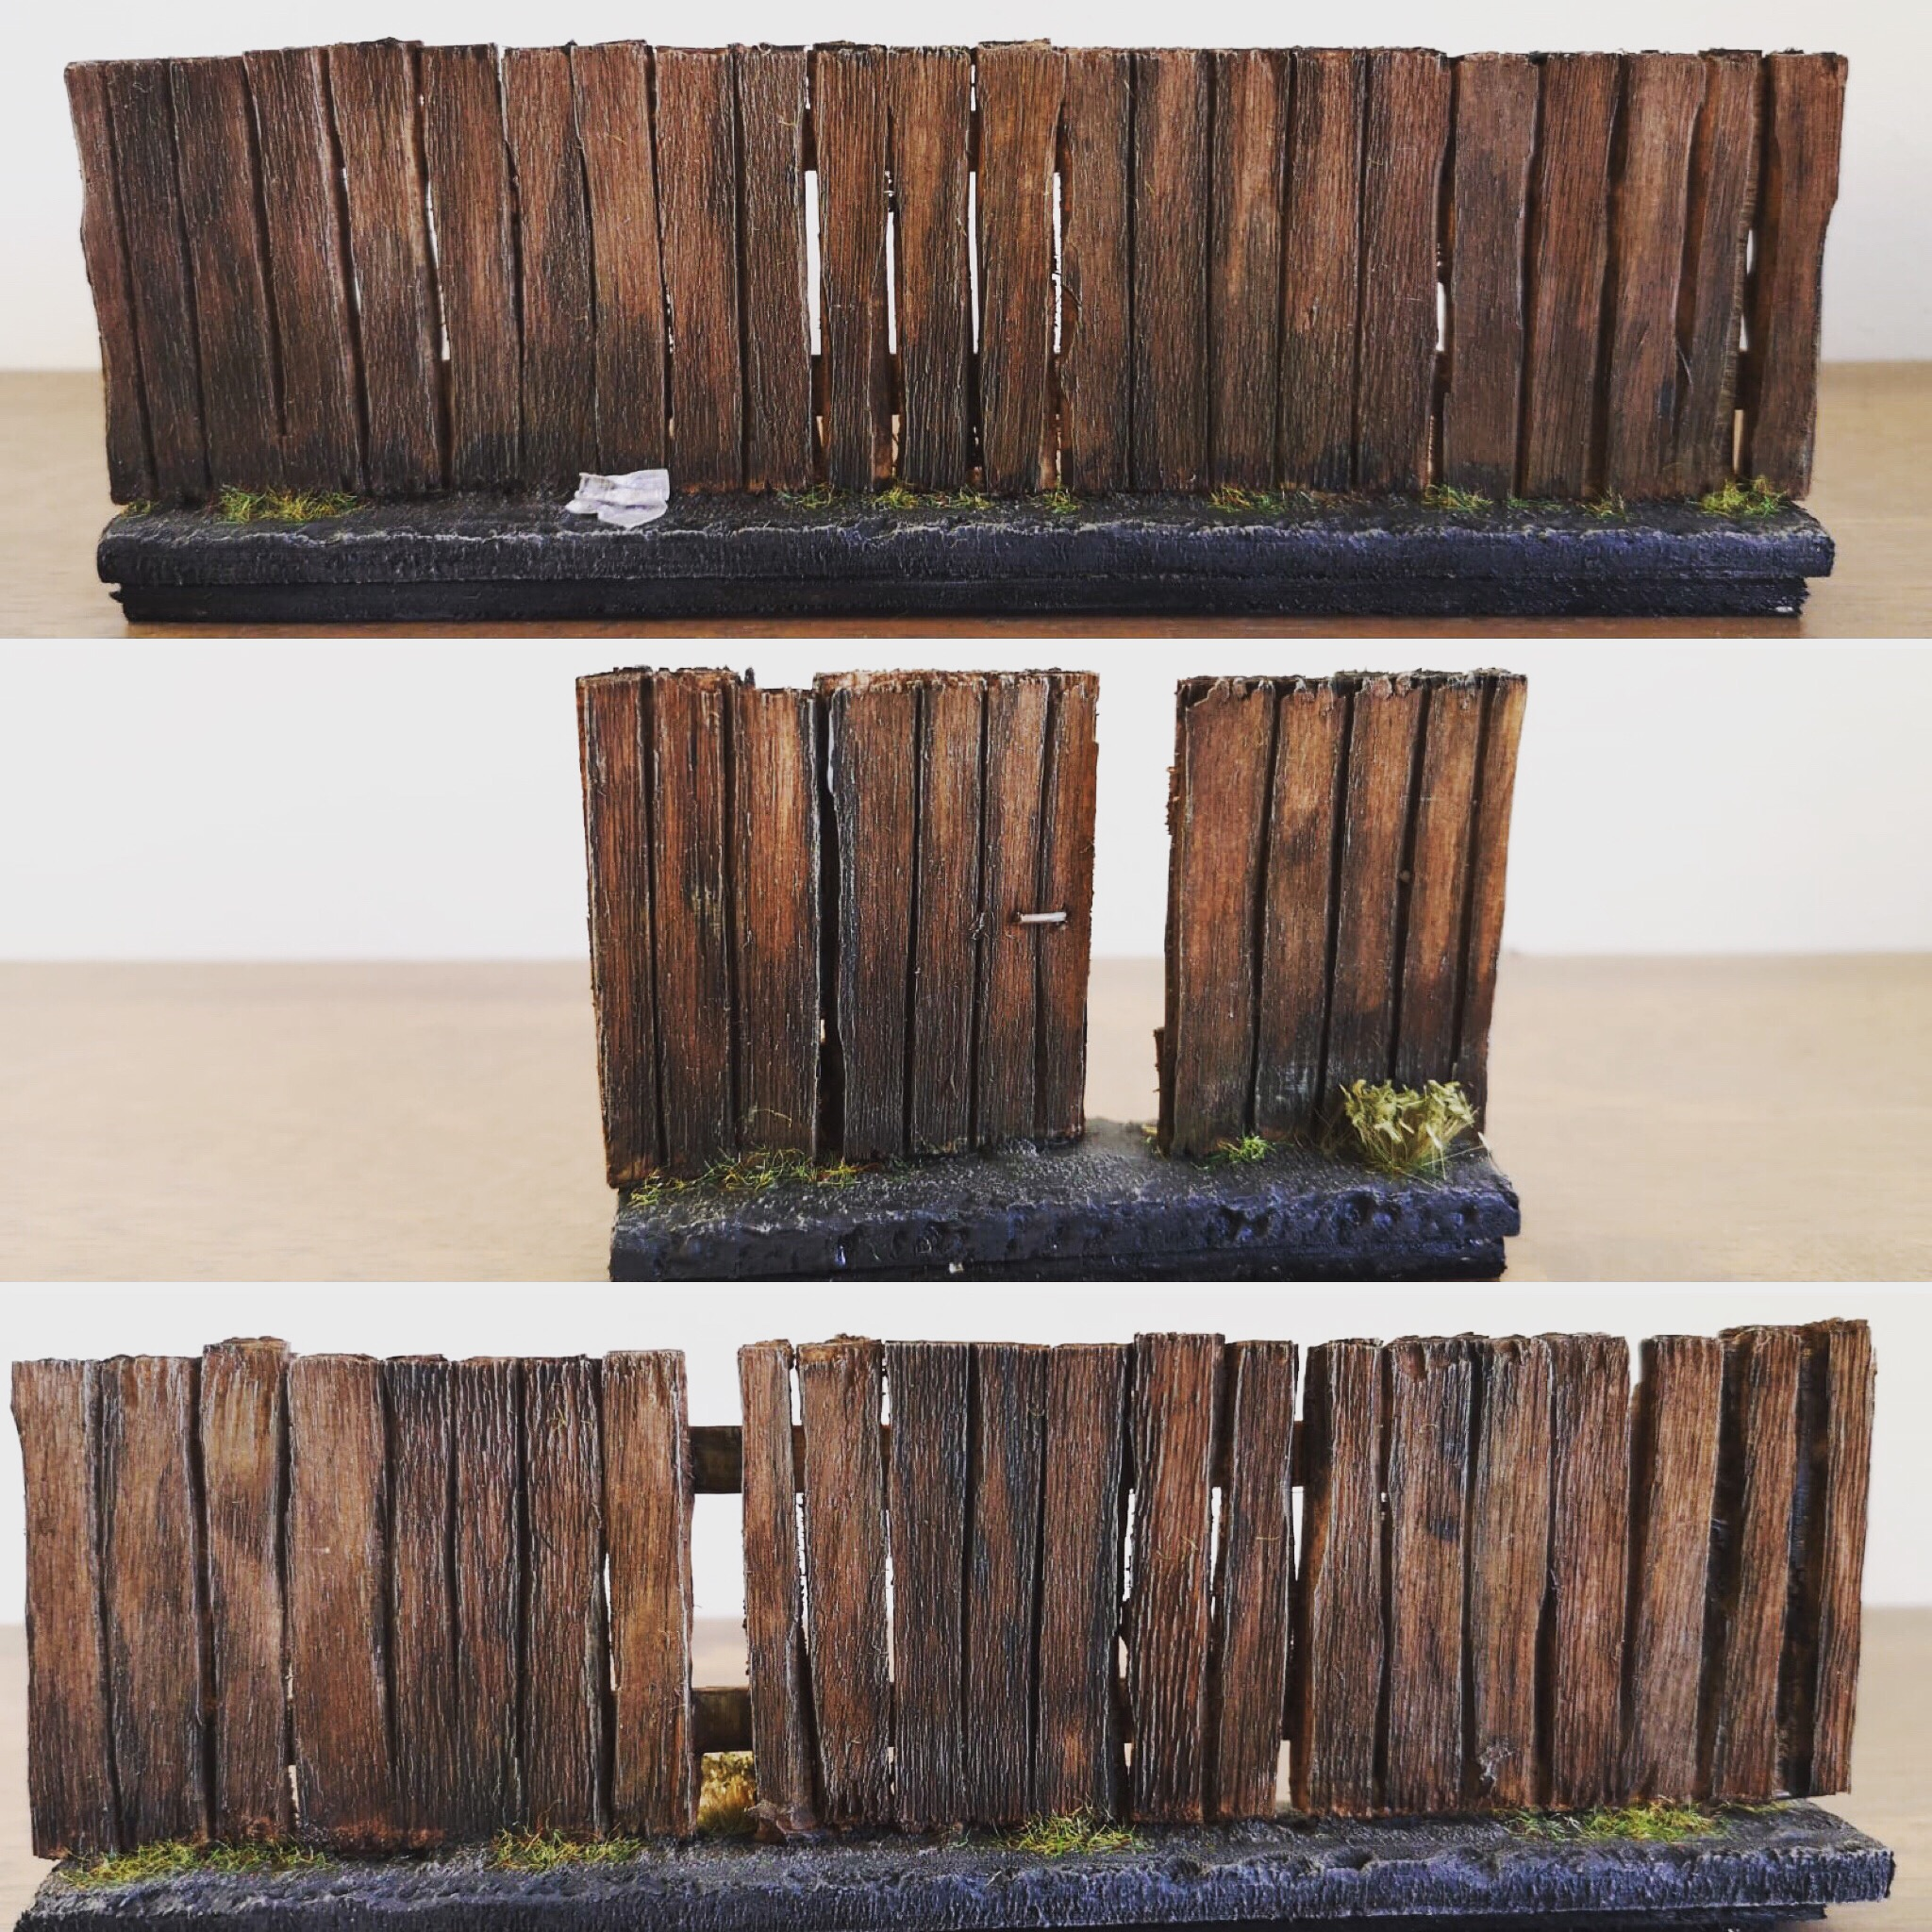 New terrain: Pailing fence